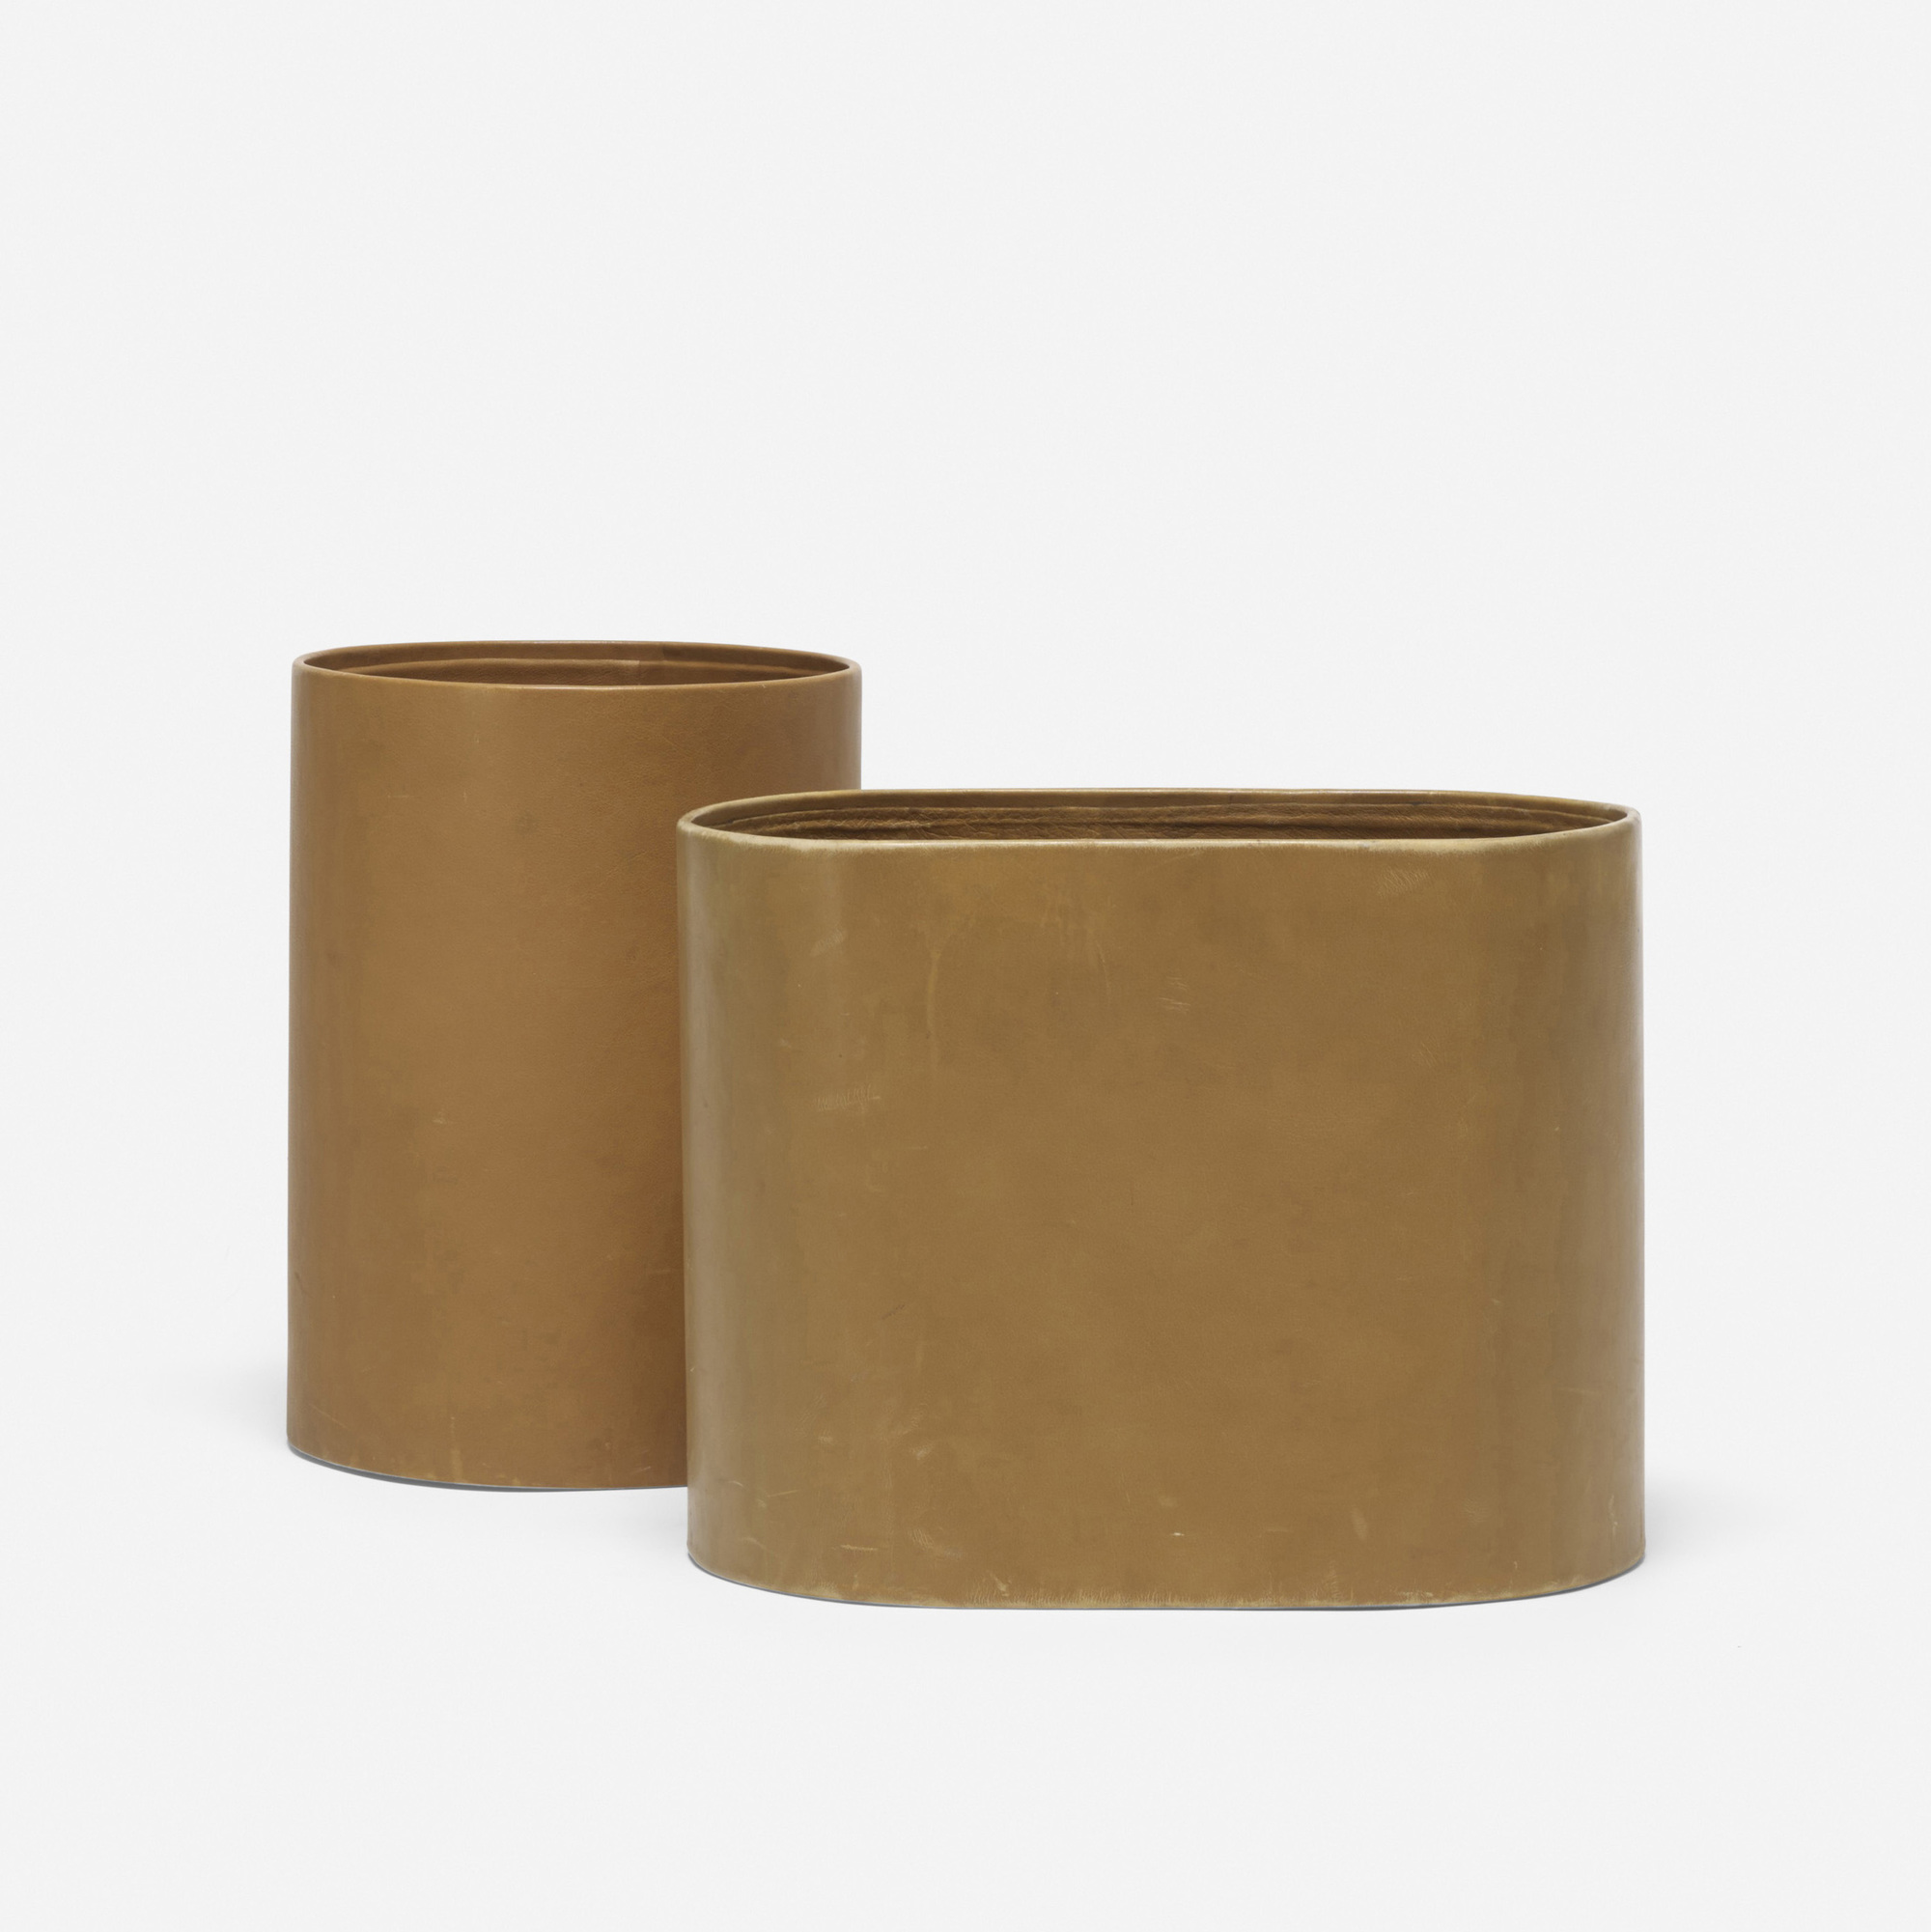 152: Don Powell and Robert Kleinschmidt / pair of wastepaper baskets from 860 Lake Shore Drive, Chicago (2 of 3)